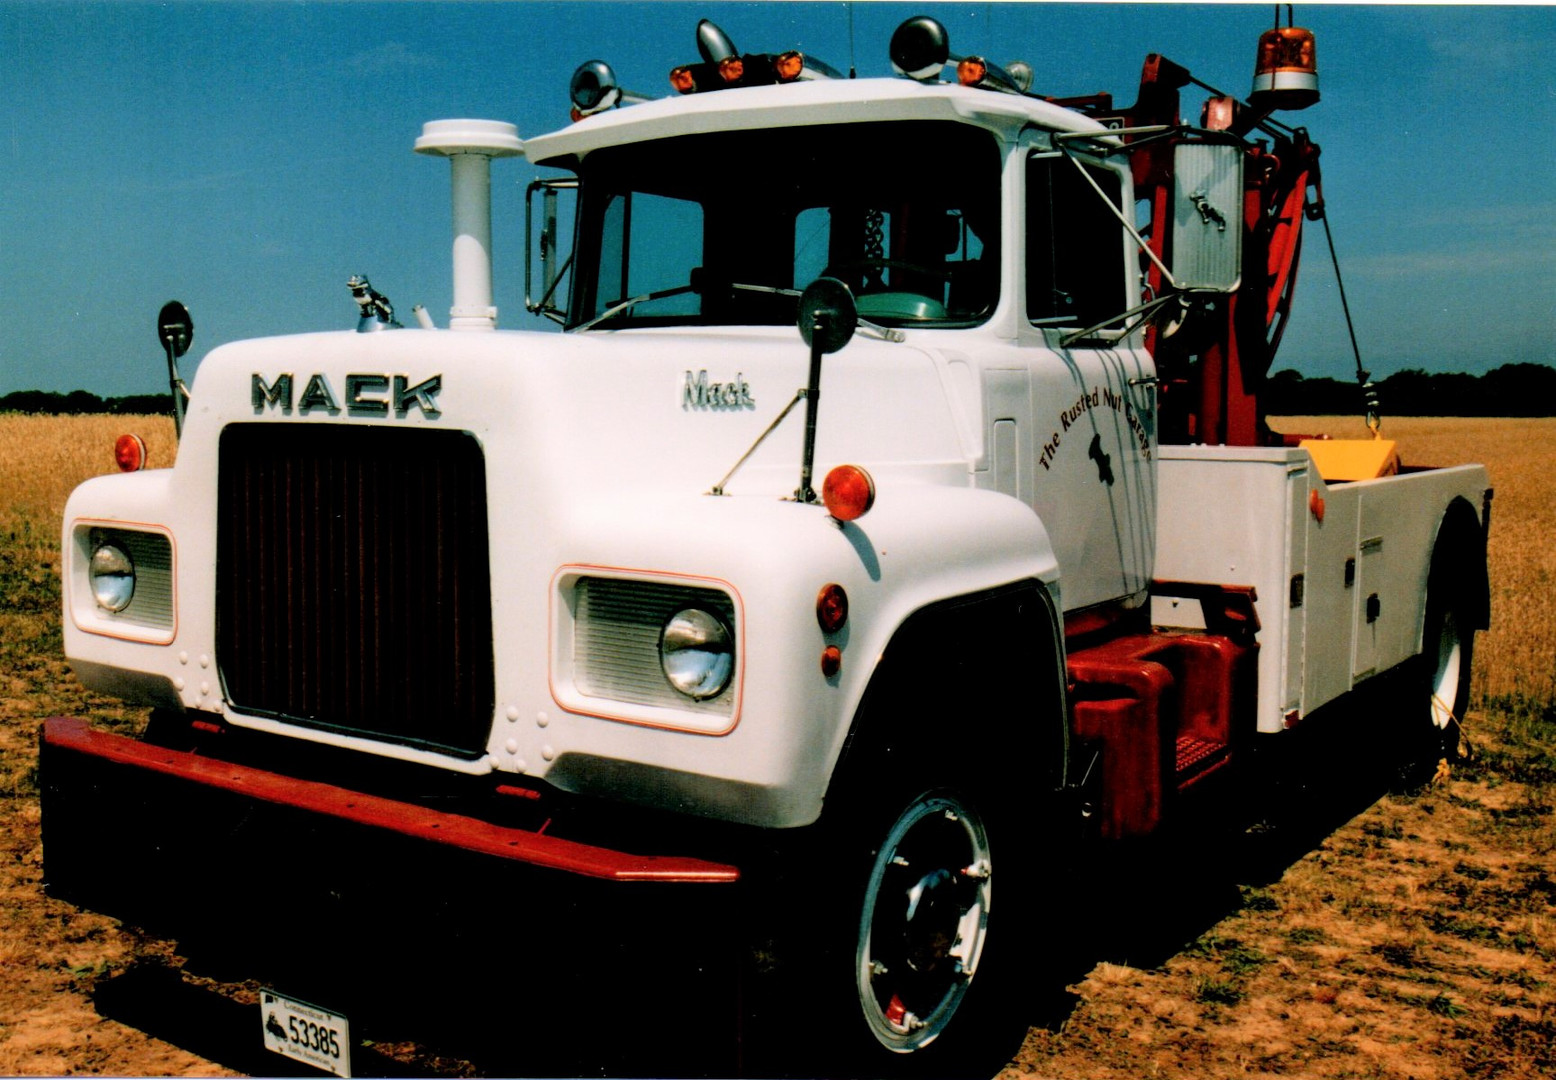 1969 Mack R-600 wrecker from Connecticut